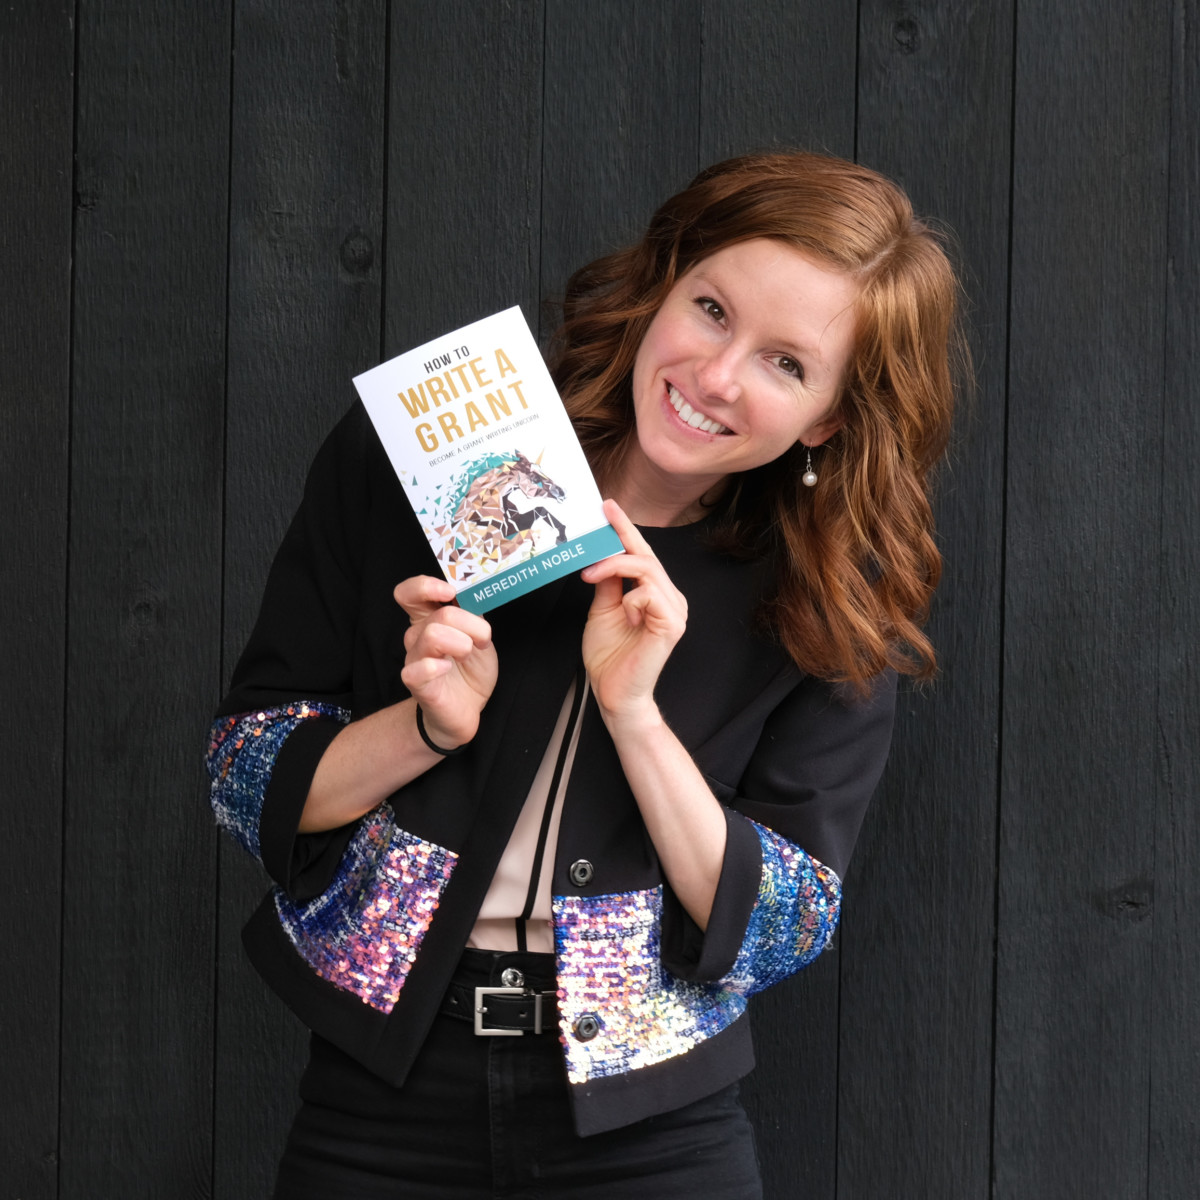 Meredith Noble stands holding a book she wrote in her hands near her face while smiling